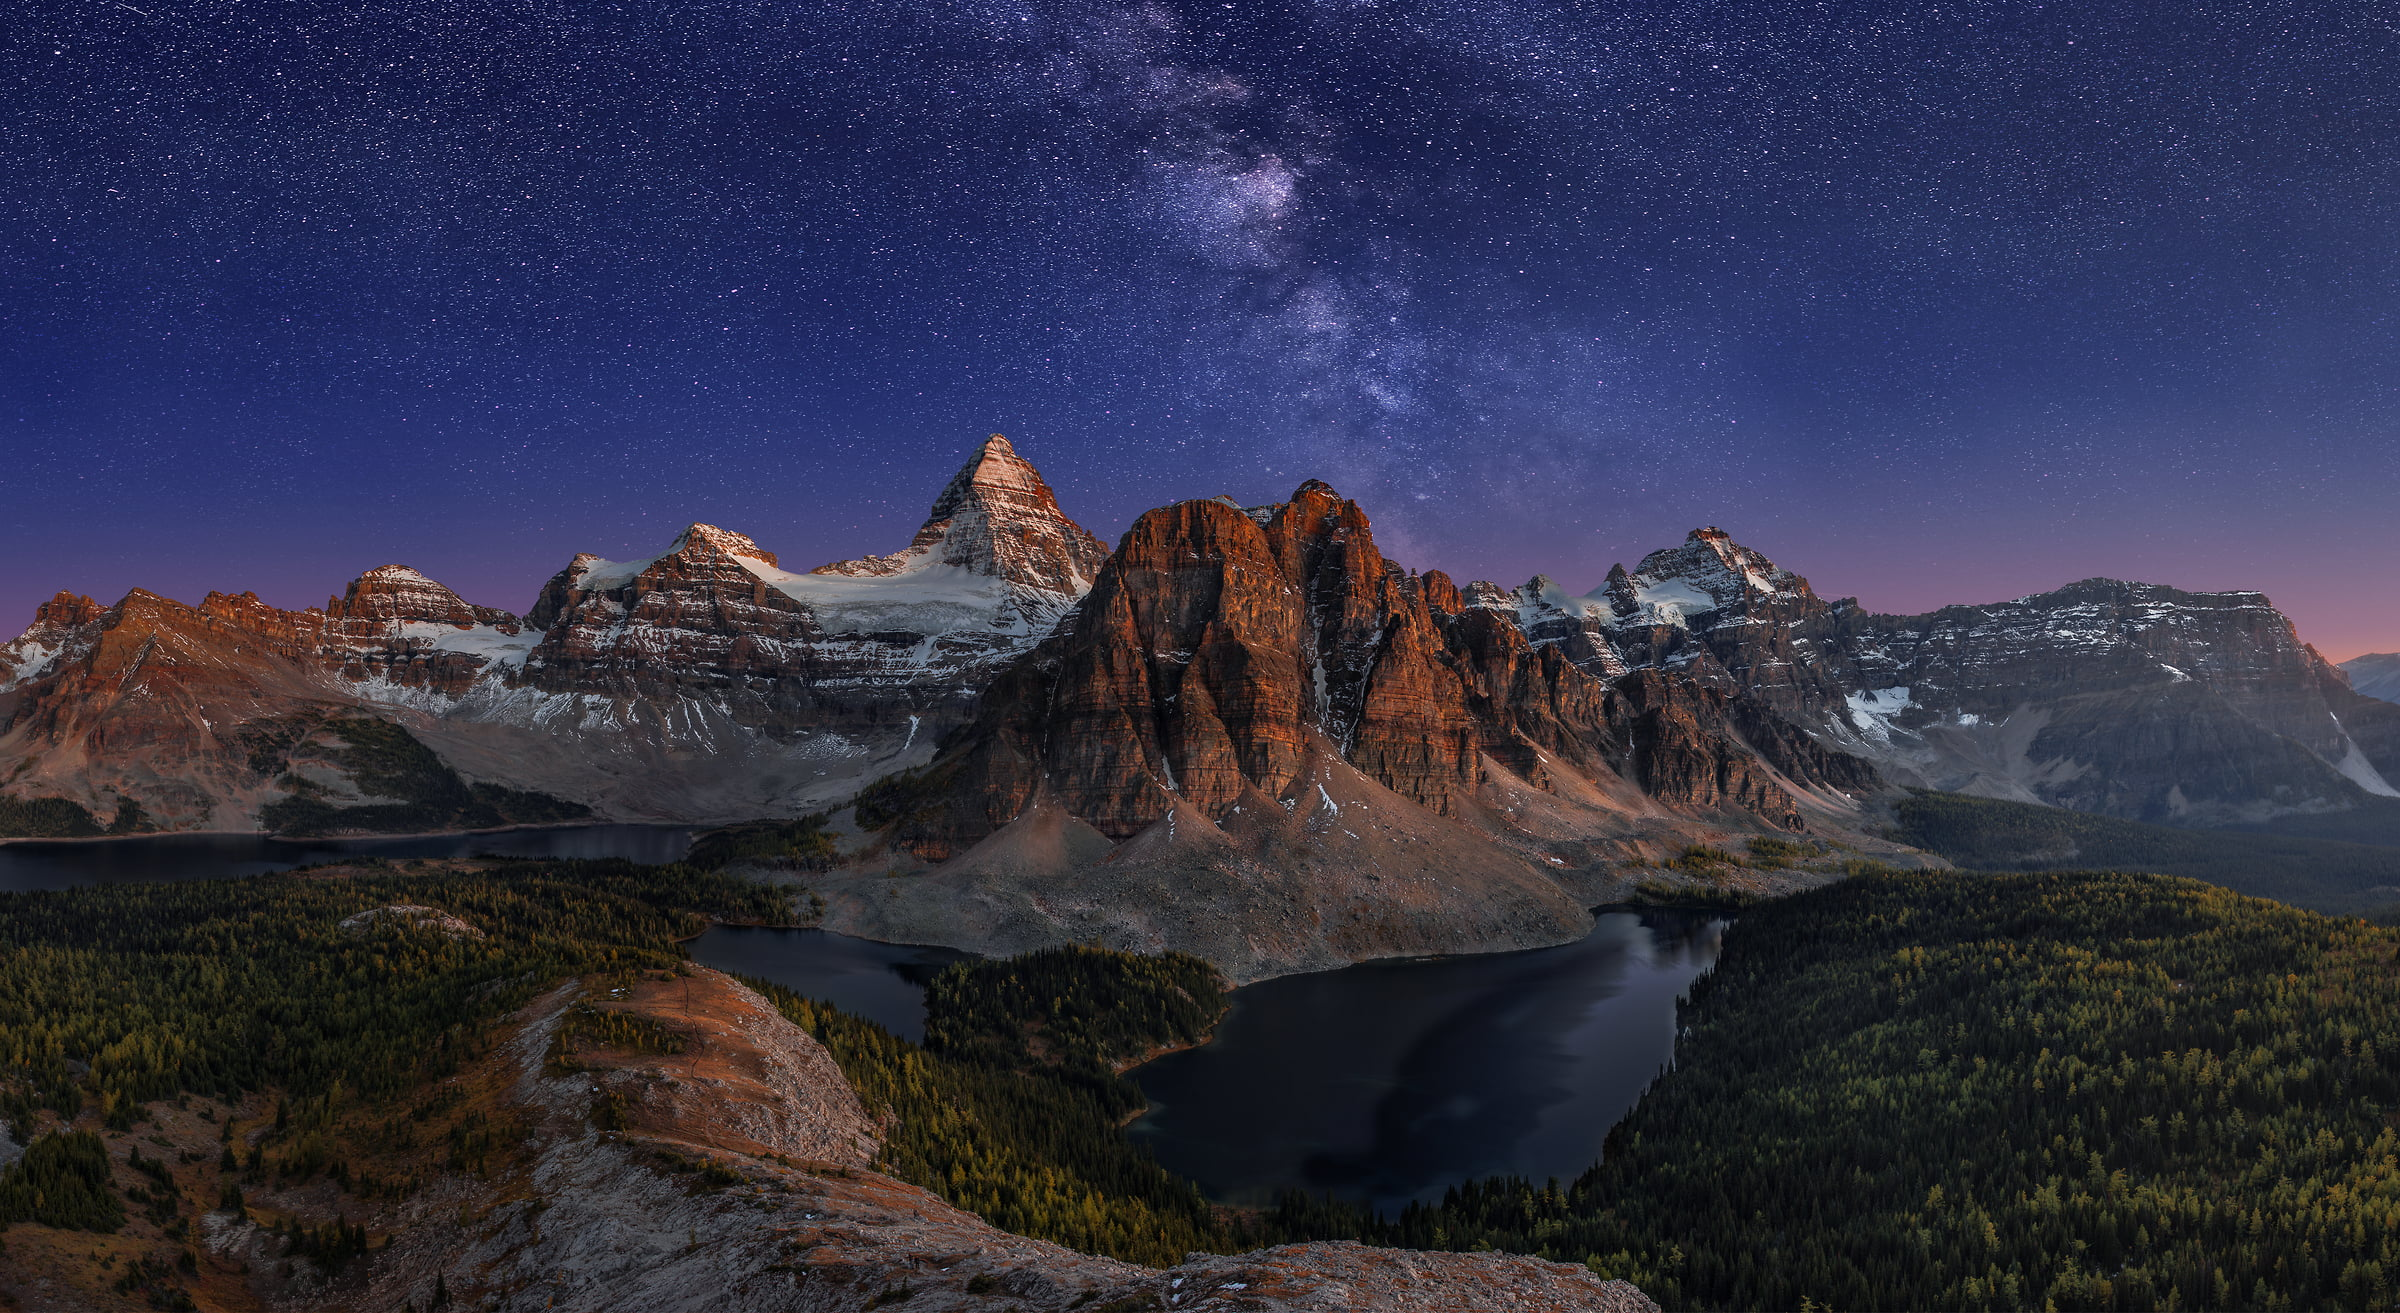 630 megapixels! A very high resolution, large-format VAST photo print of mountains, lakes, the milky way, stars, and Mount Assiniboine; fine art landscape photo created by Chris Collacott in Assiniboine Provinical Park, British Columbia, Canada